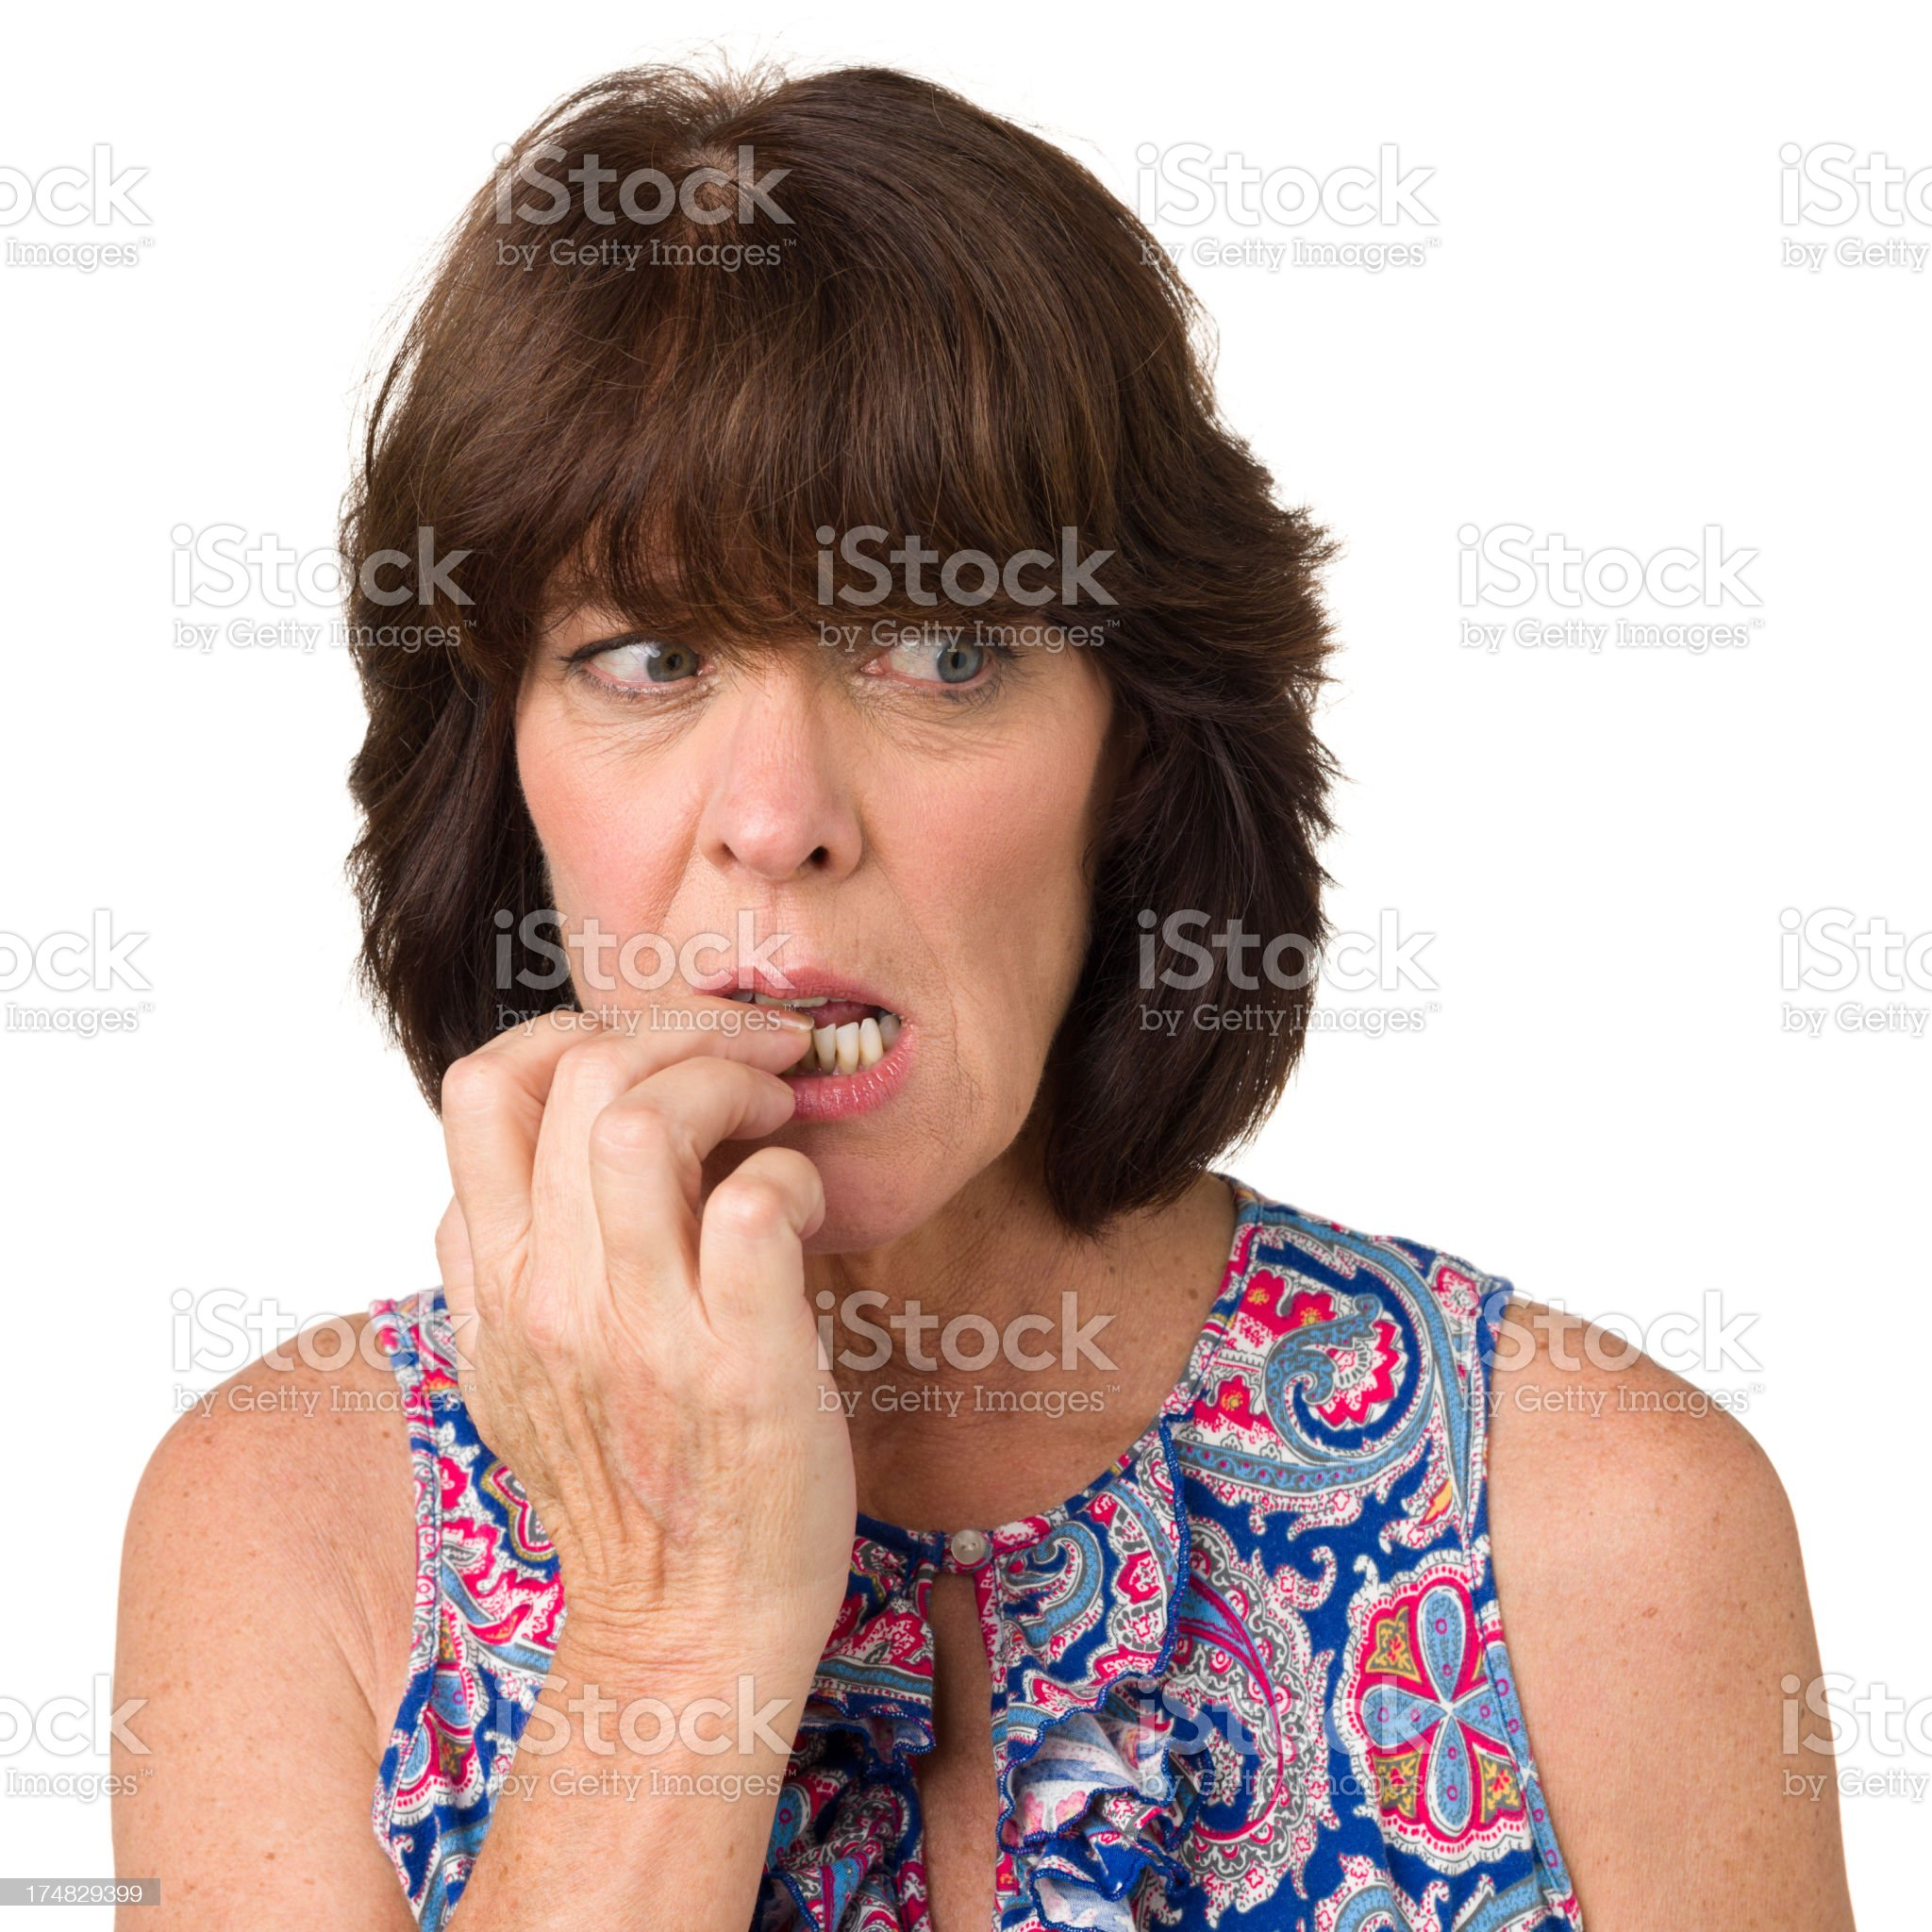 Anxious Woman Biting Fingernails royalty-free stock photo